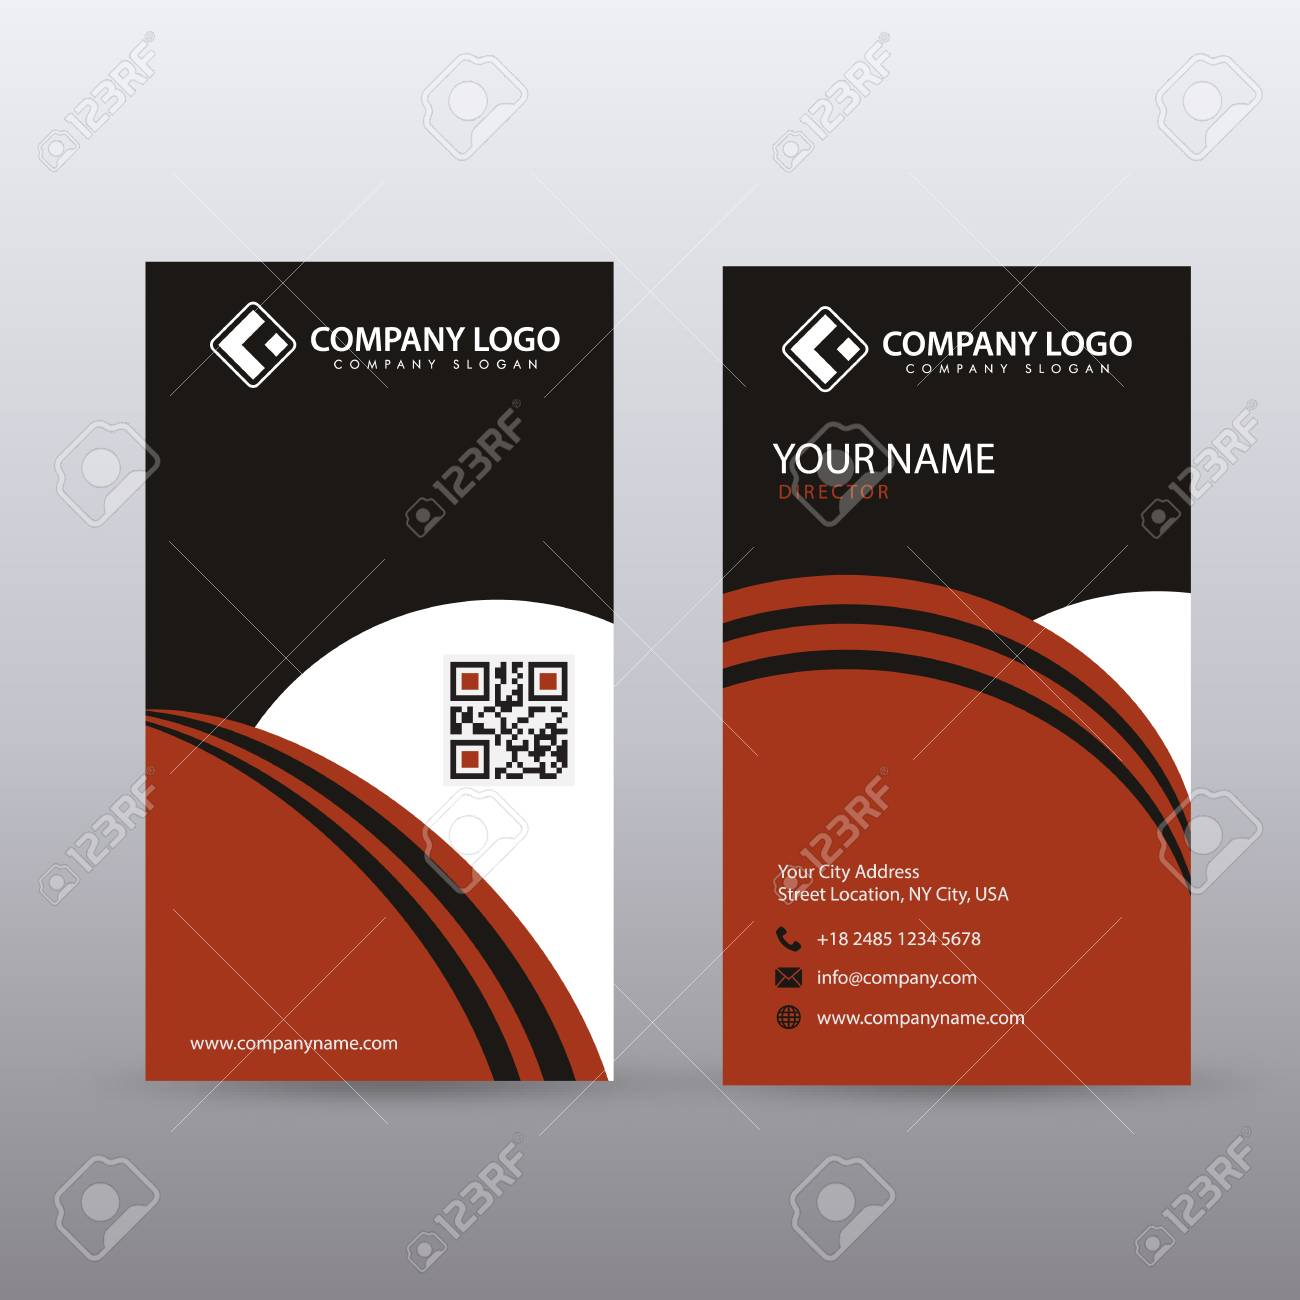 Modern creative vertical clean business card template with red modern creative vertical clean business card template with red black color fully editable vector accmission Images